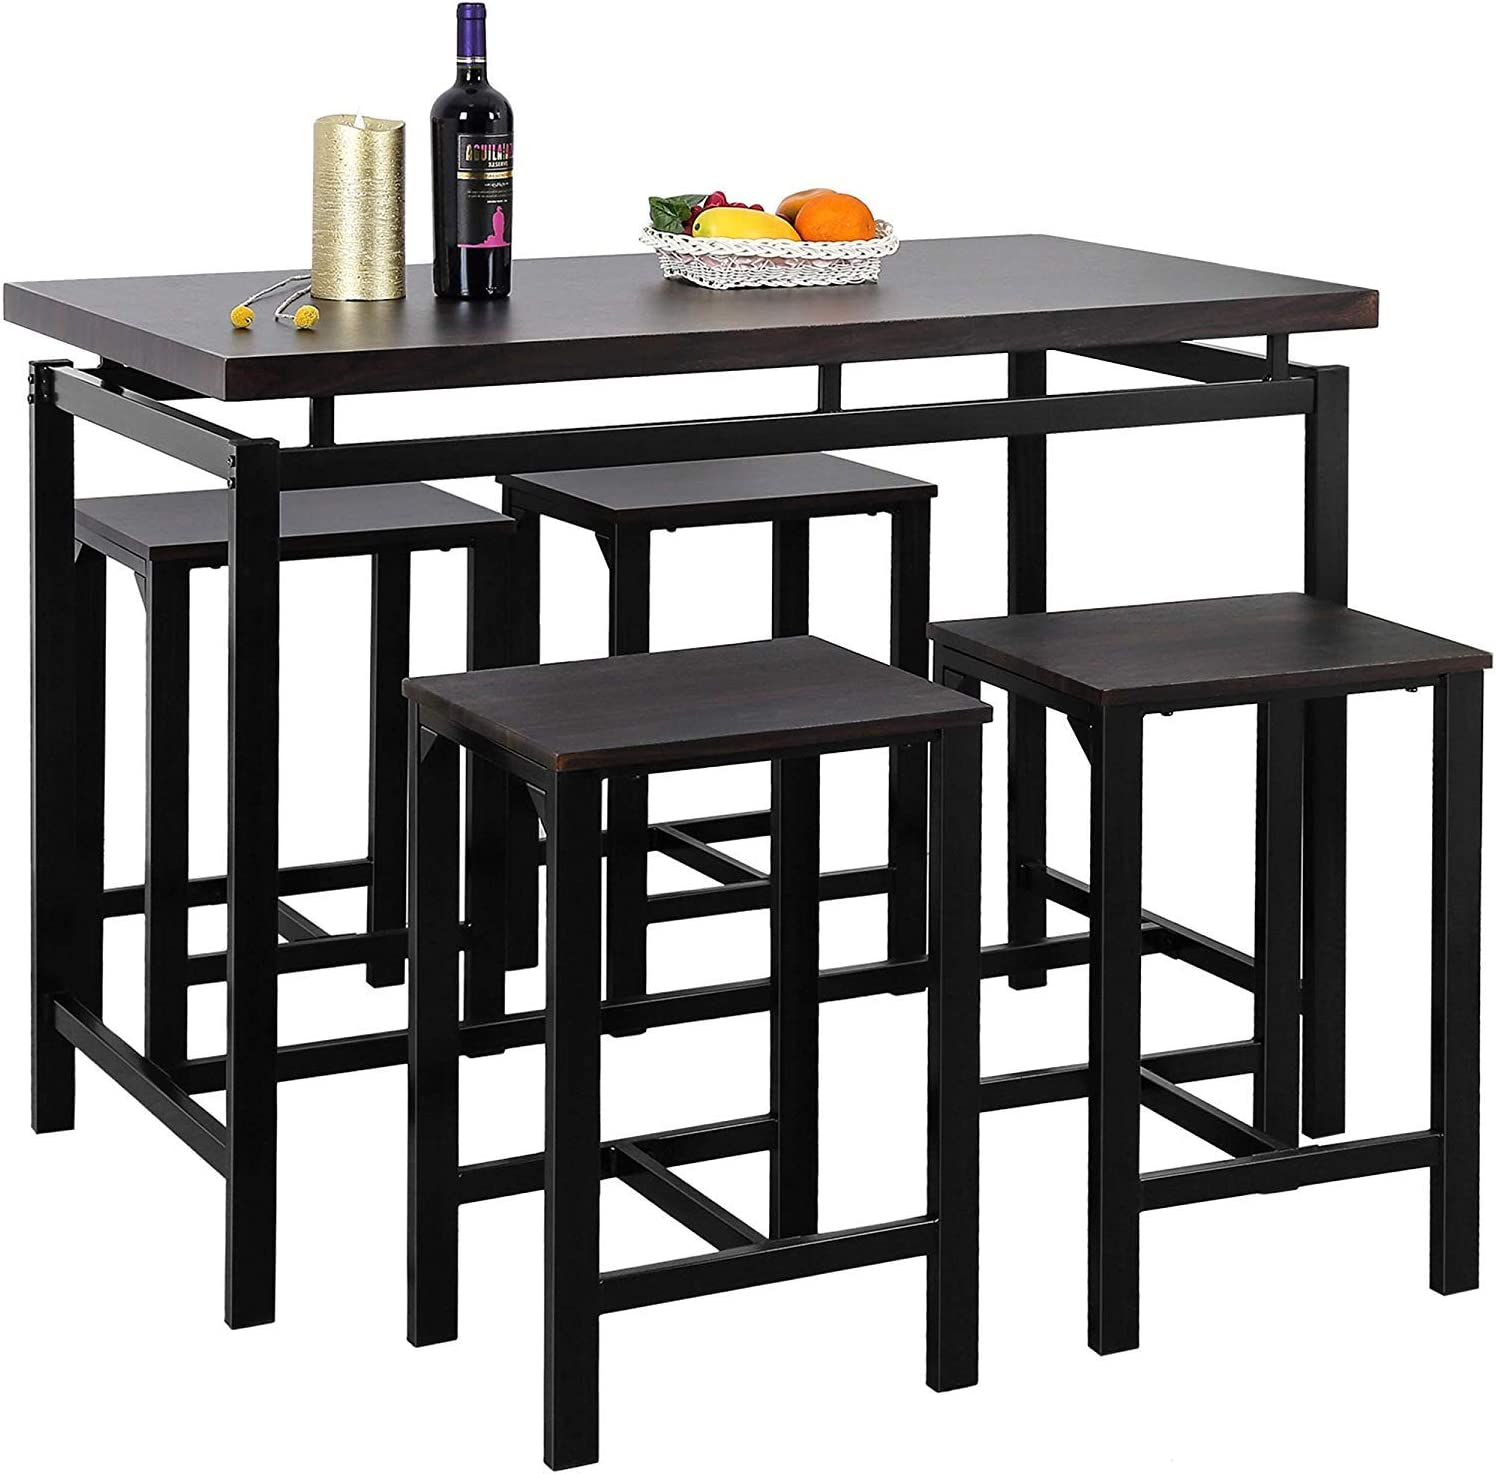 MOOSENG, 5 Pieces Dining Set, Wood Elegant Pub Height Table and 4 Backless Stools, Perfect for Bar, Kitchen, Breakfast Nook, Living Room Occasions, Espresso